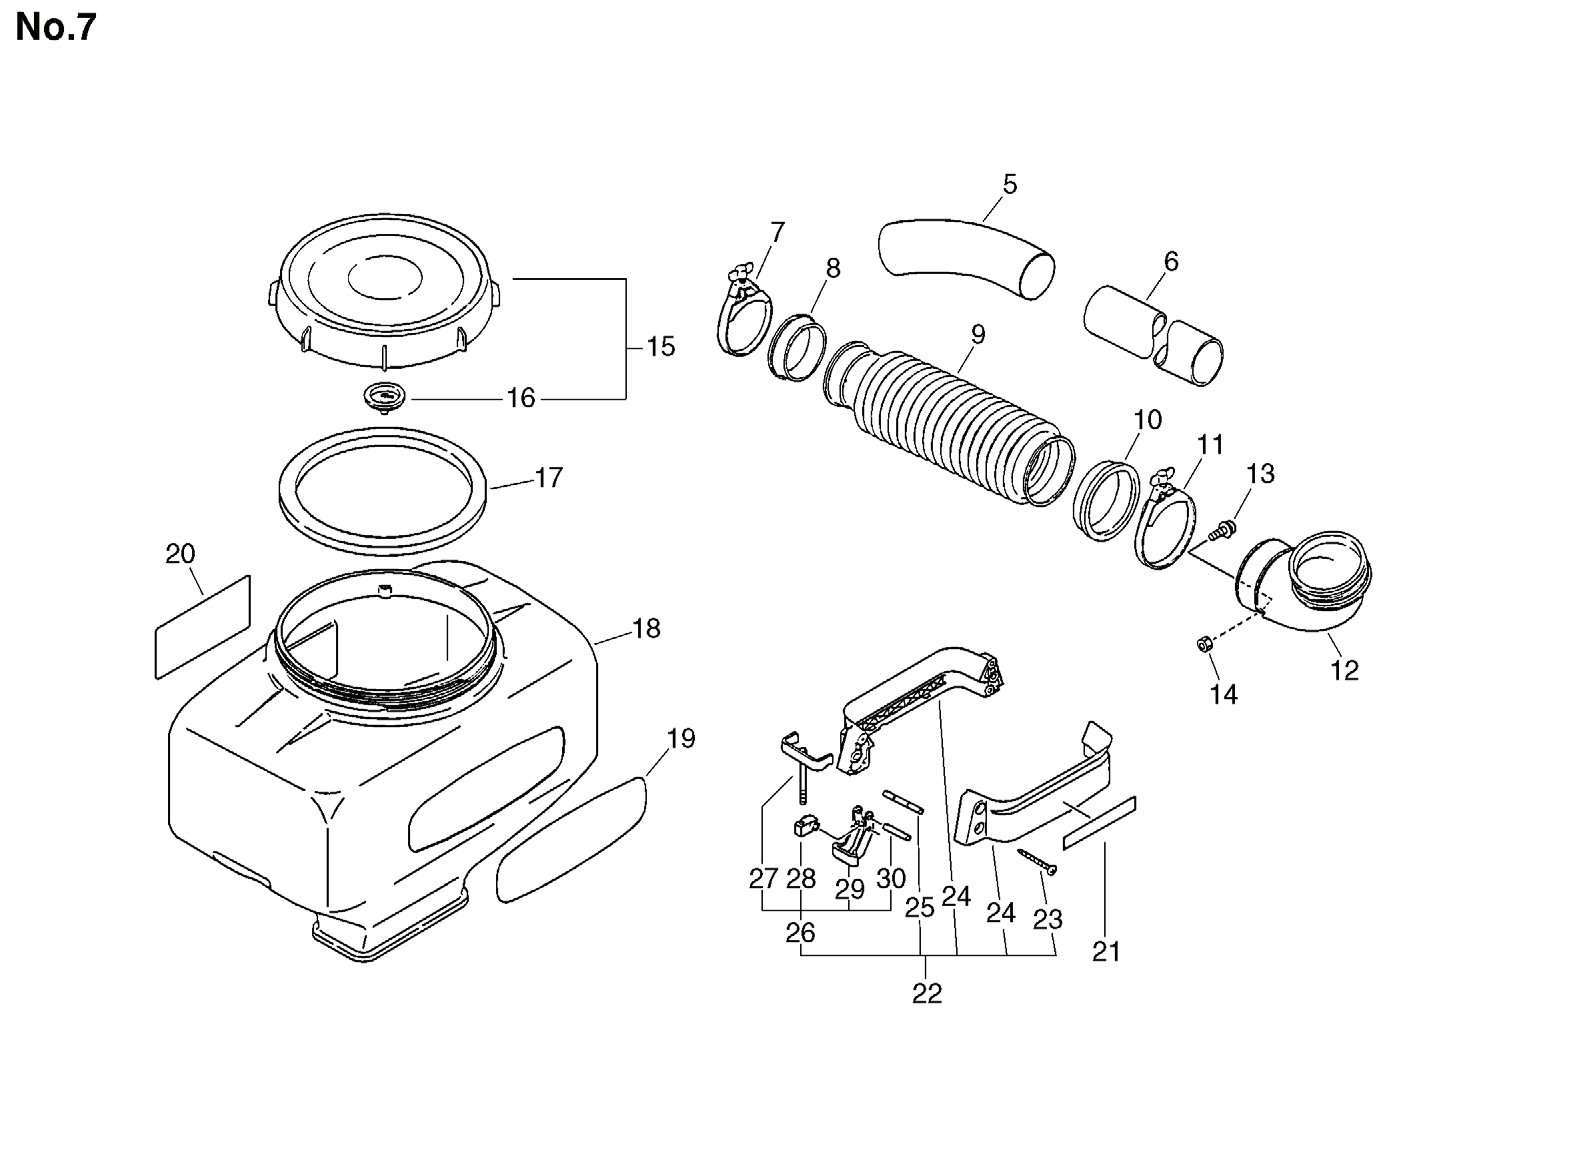 Date:24.11.2008 Page: 2 Group:Duster/Mist Blowers Model:DM-4610(SrNr 004334 and before) Section:Chemical Tank 25 + 250914-06210 2 PIN, TANK HOLDER 26 + 250902-06310 2 BRACKET ASSY, C.